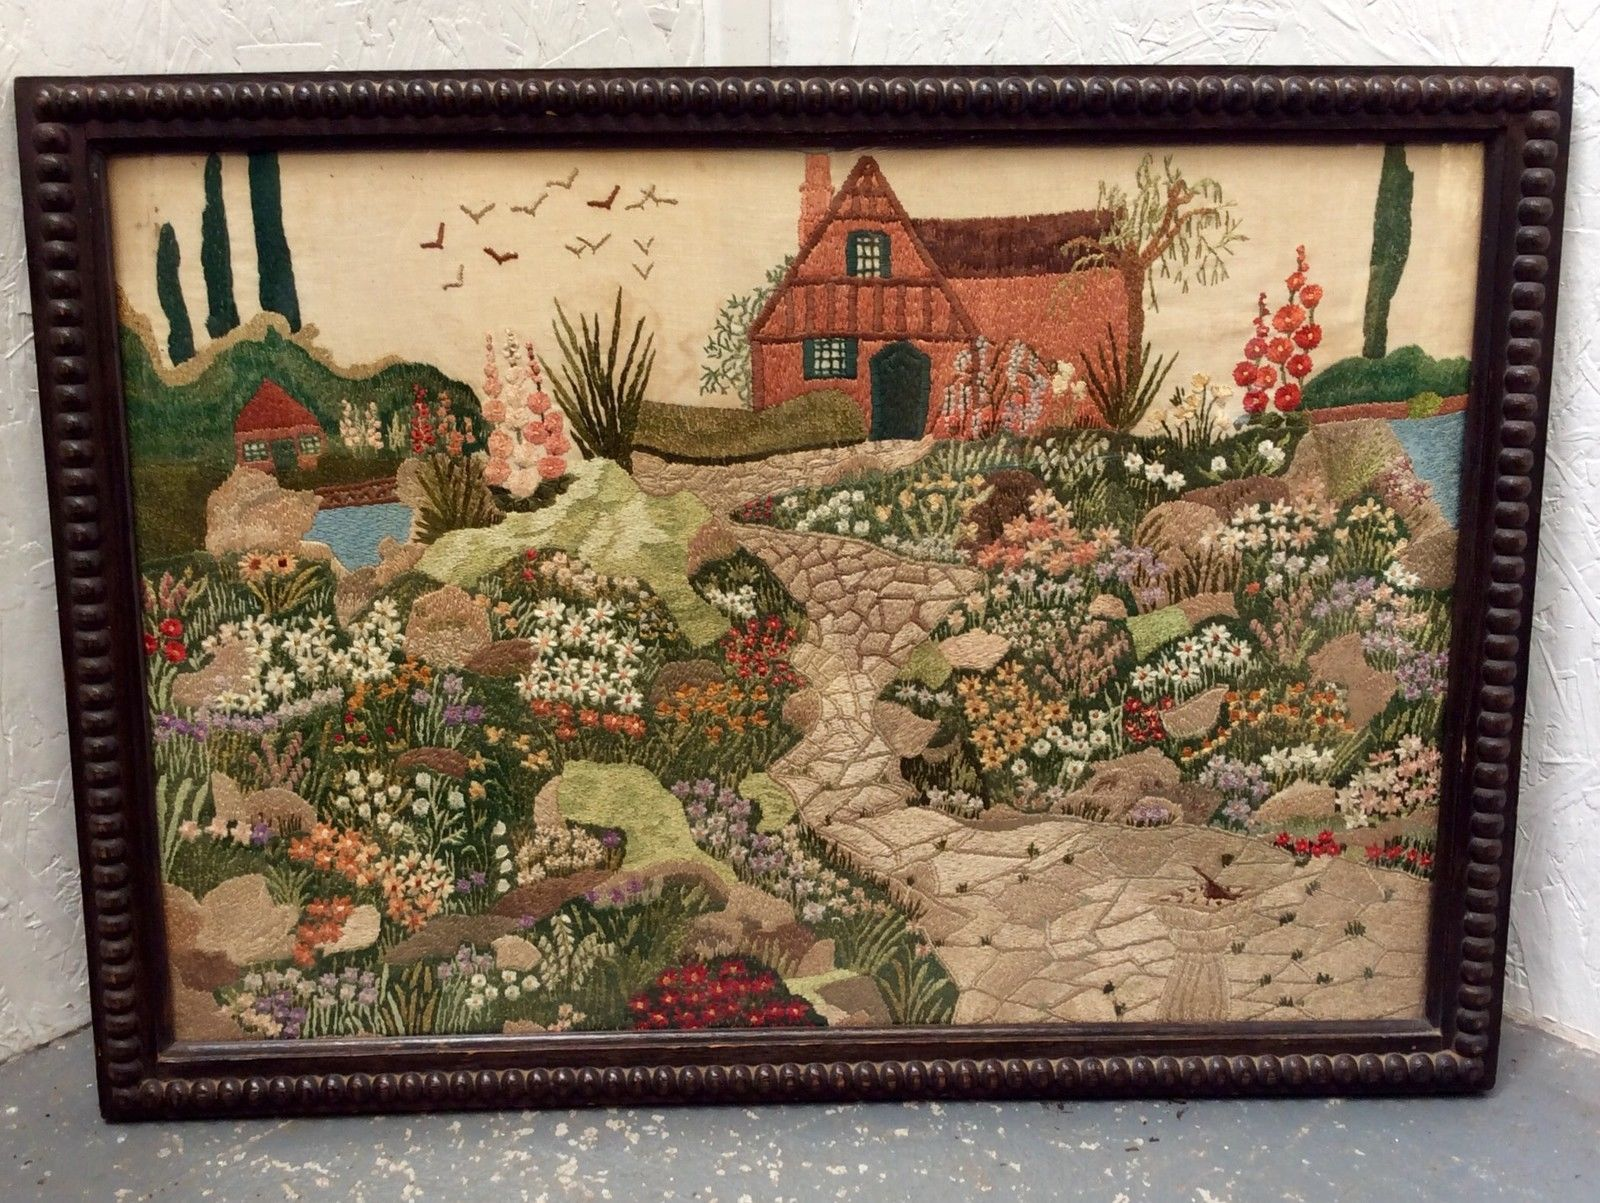 HUGE ANTIQUE OAK FRAMED EMBROIDERY OF AN ENGLISH COUNTRY GARDEN ...